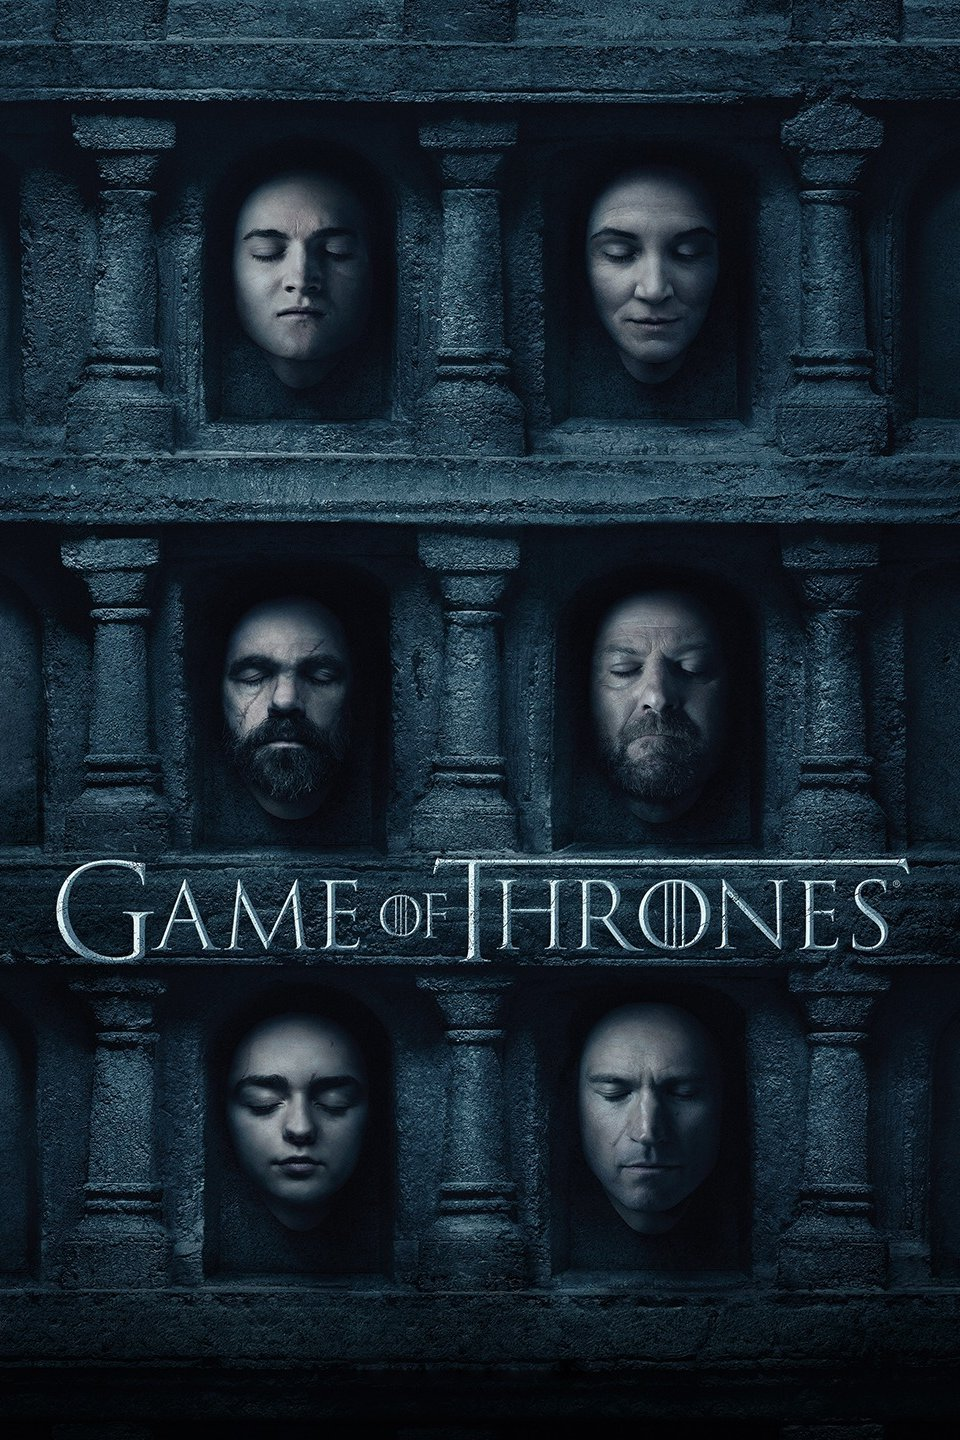 Game of thrones s06e06 HDTV x264 319 MB